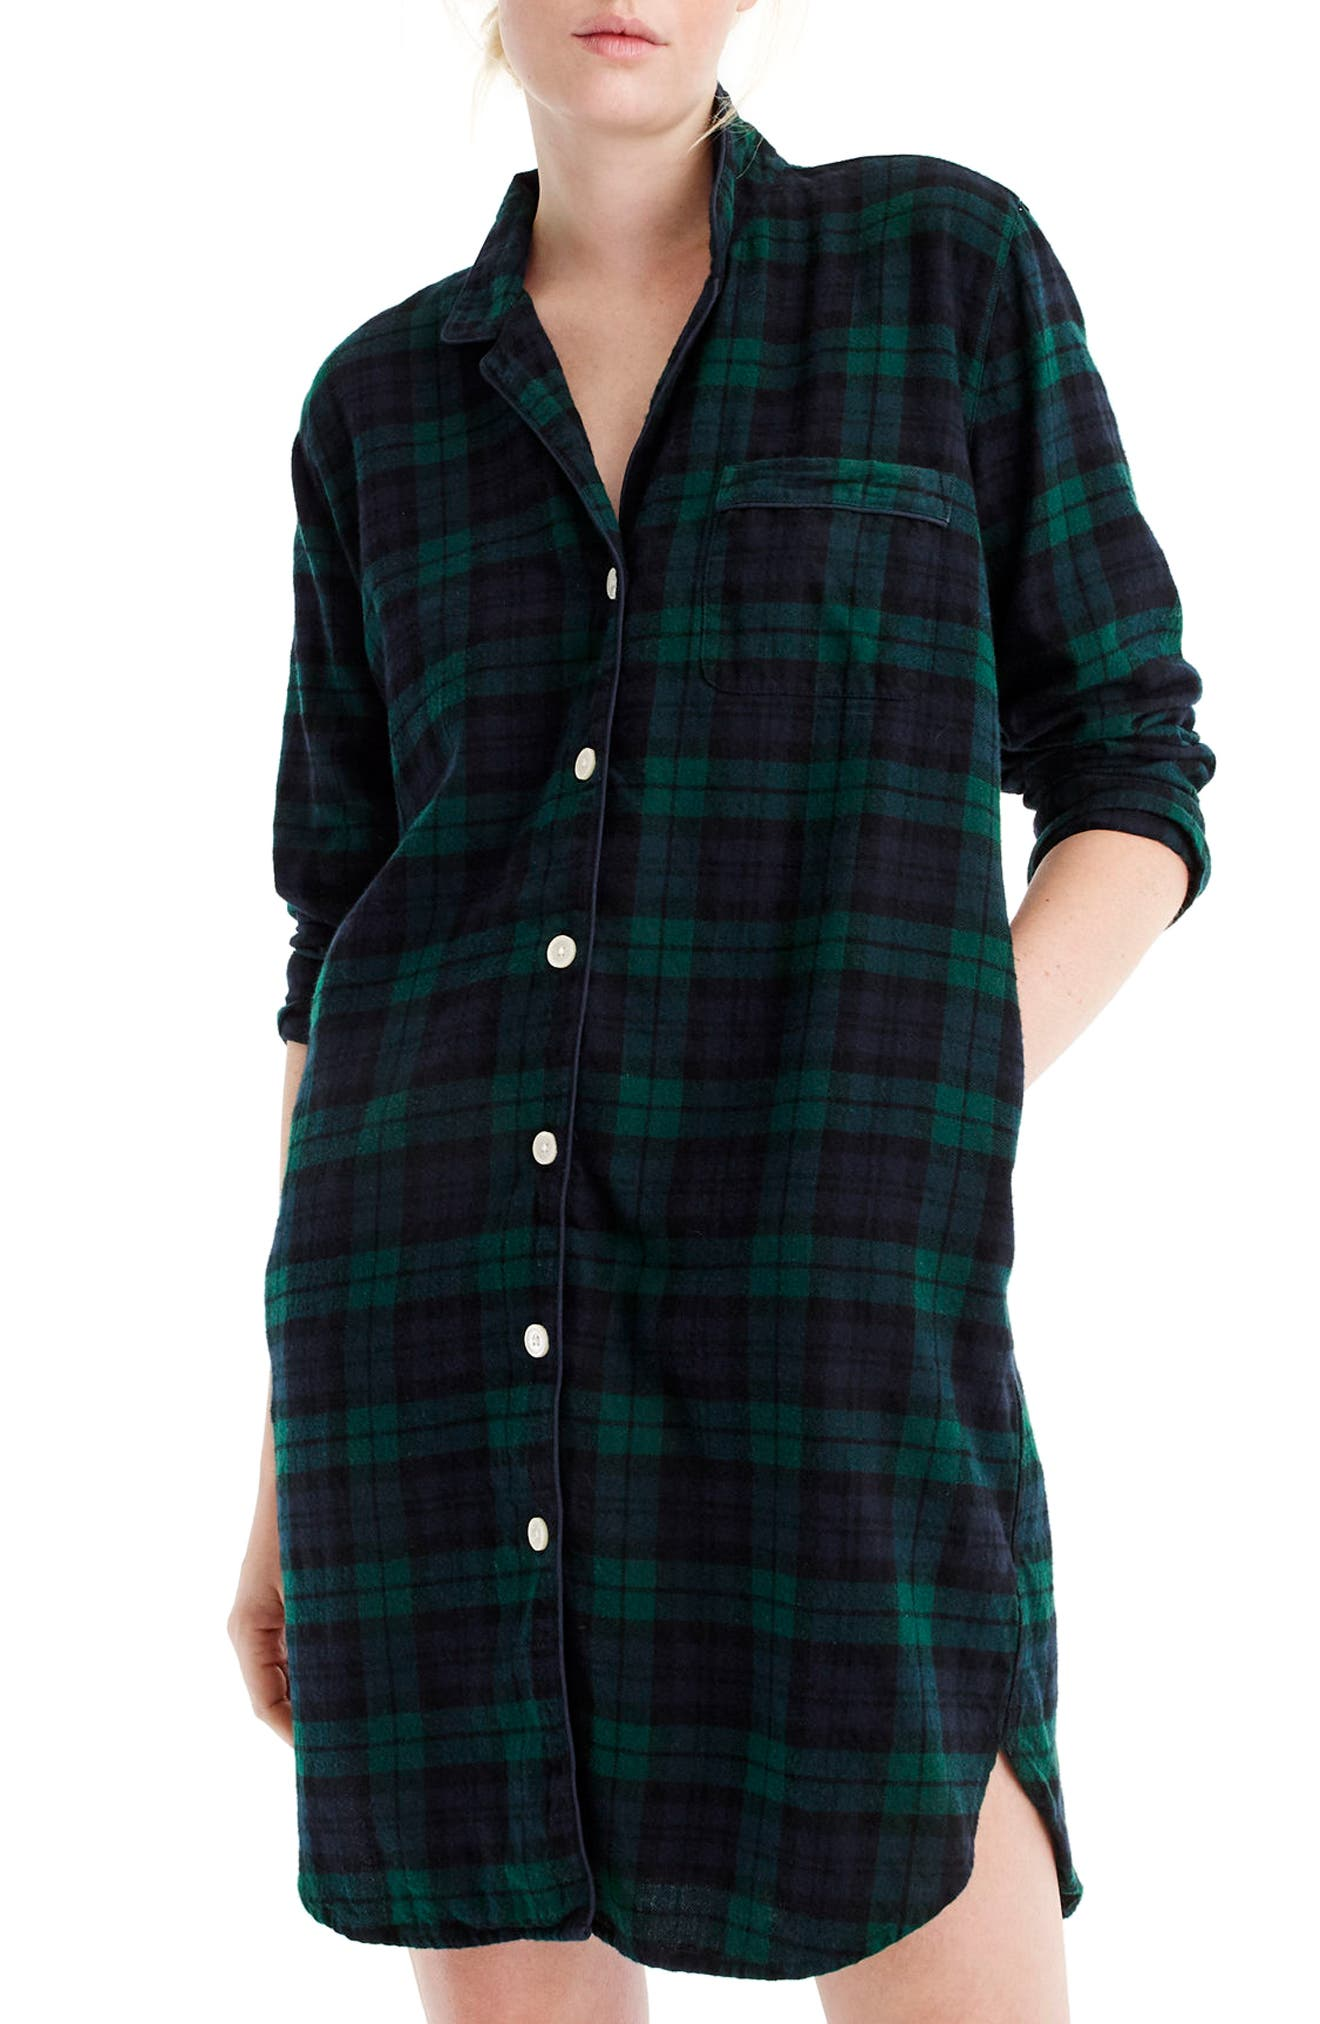 J.Crew Blackwatch Flannel Sleep Shirt